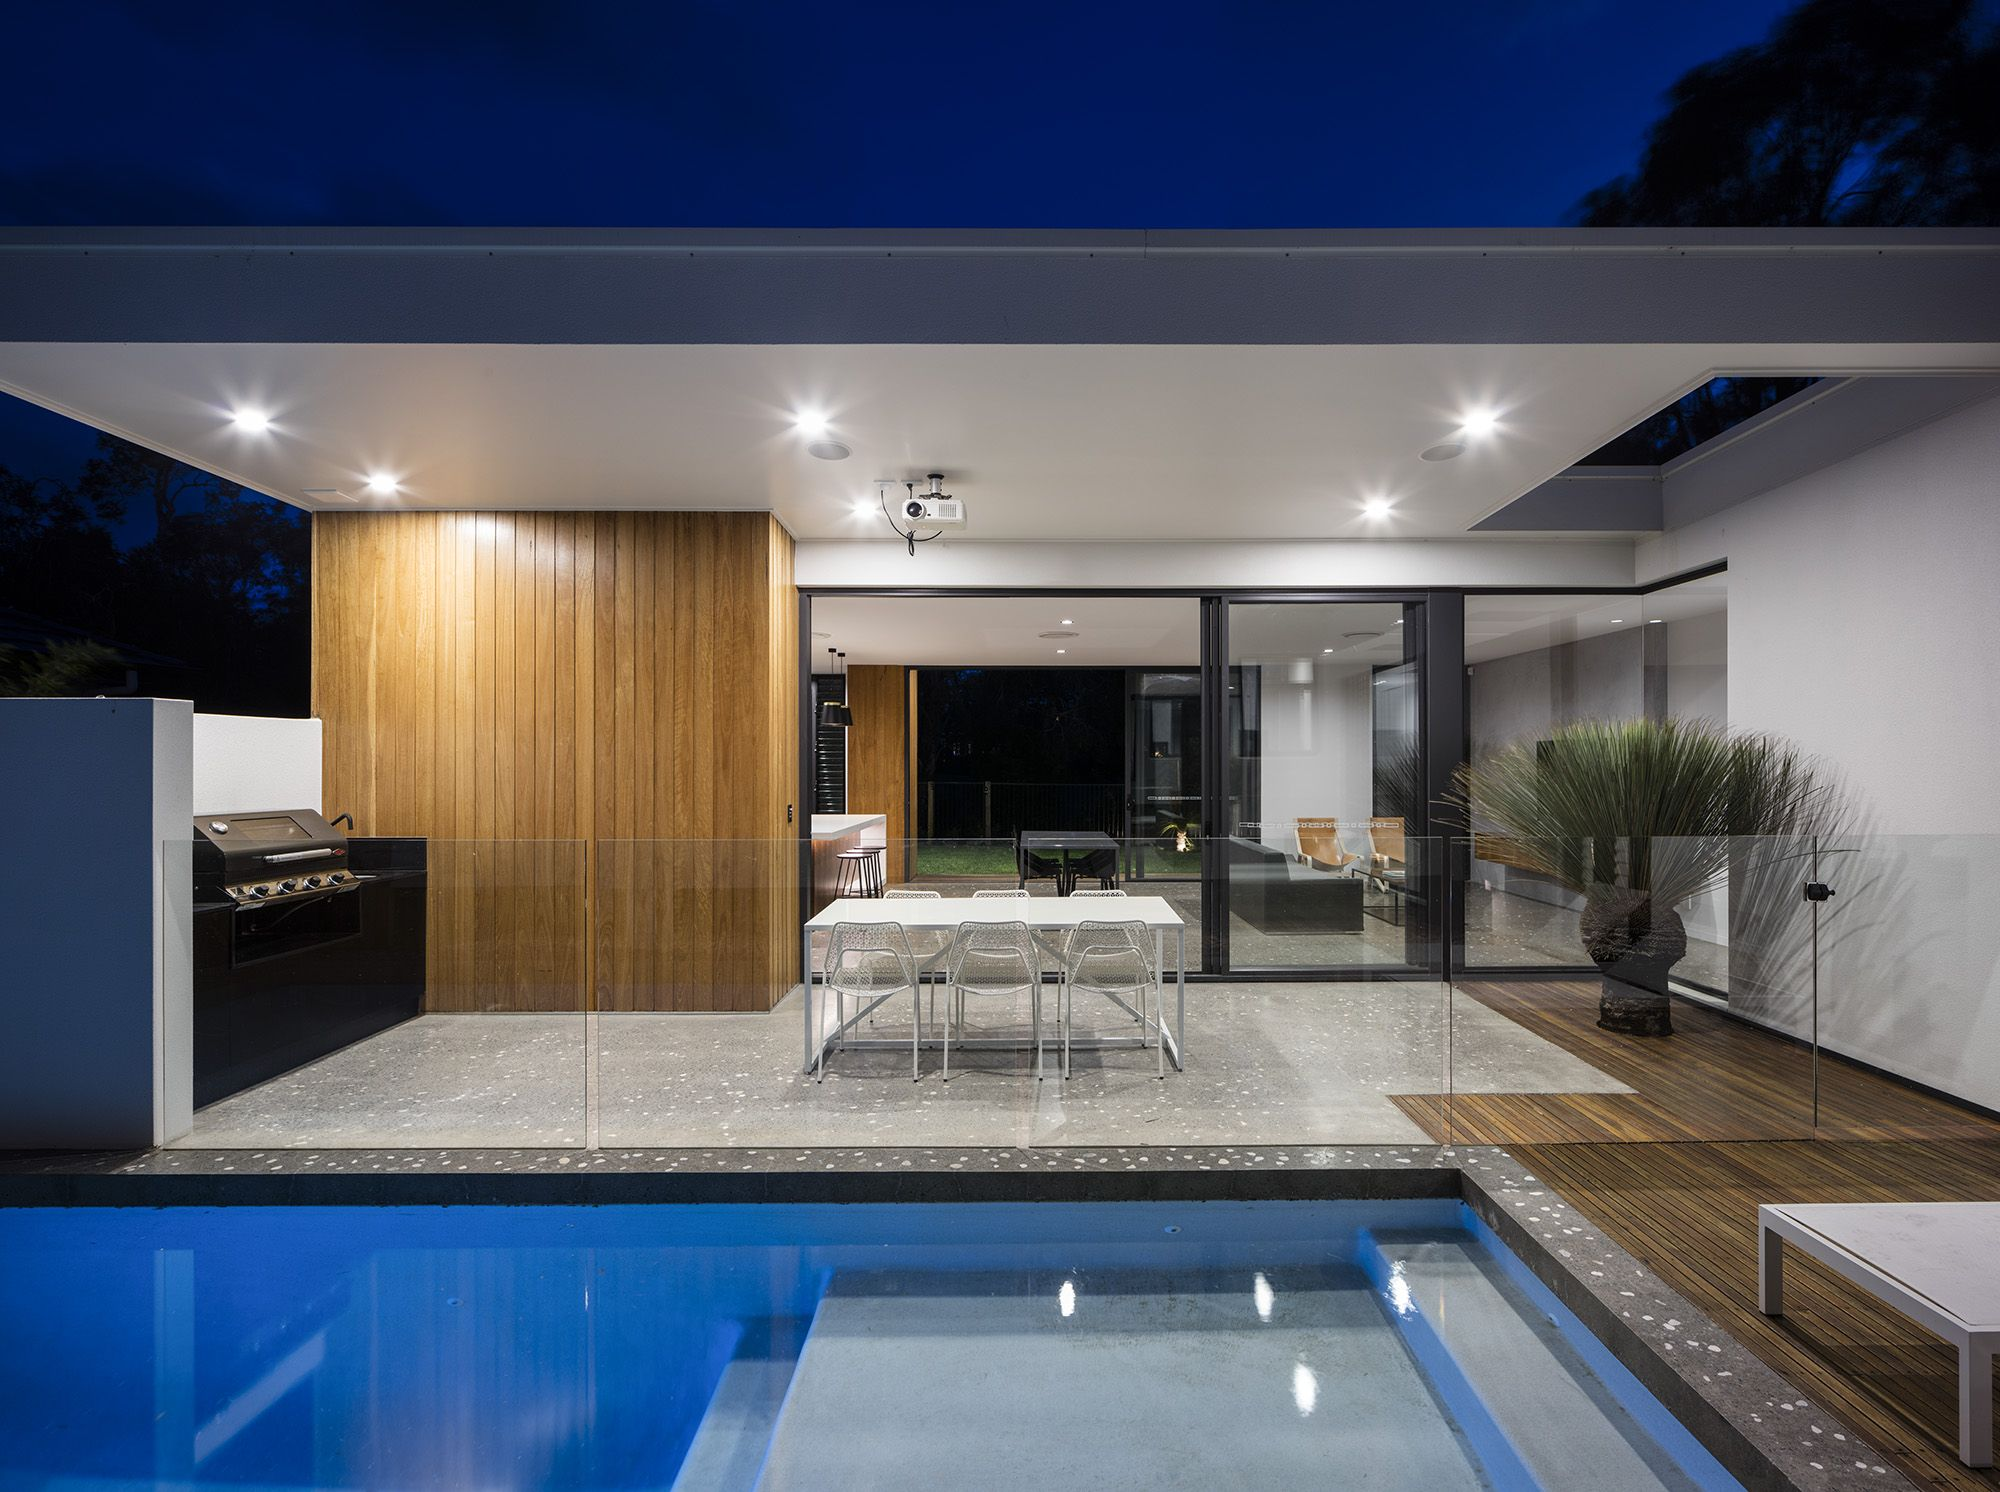 Custom home design by immackulate designer homes the peregian springs project located on sunshine coast qld australia also rh pinterest